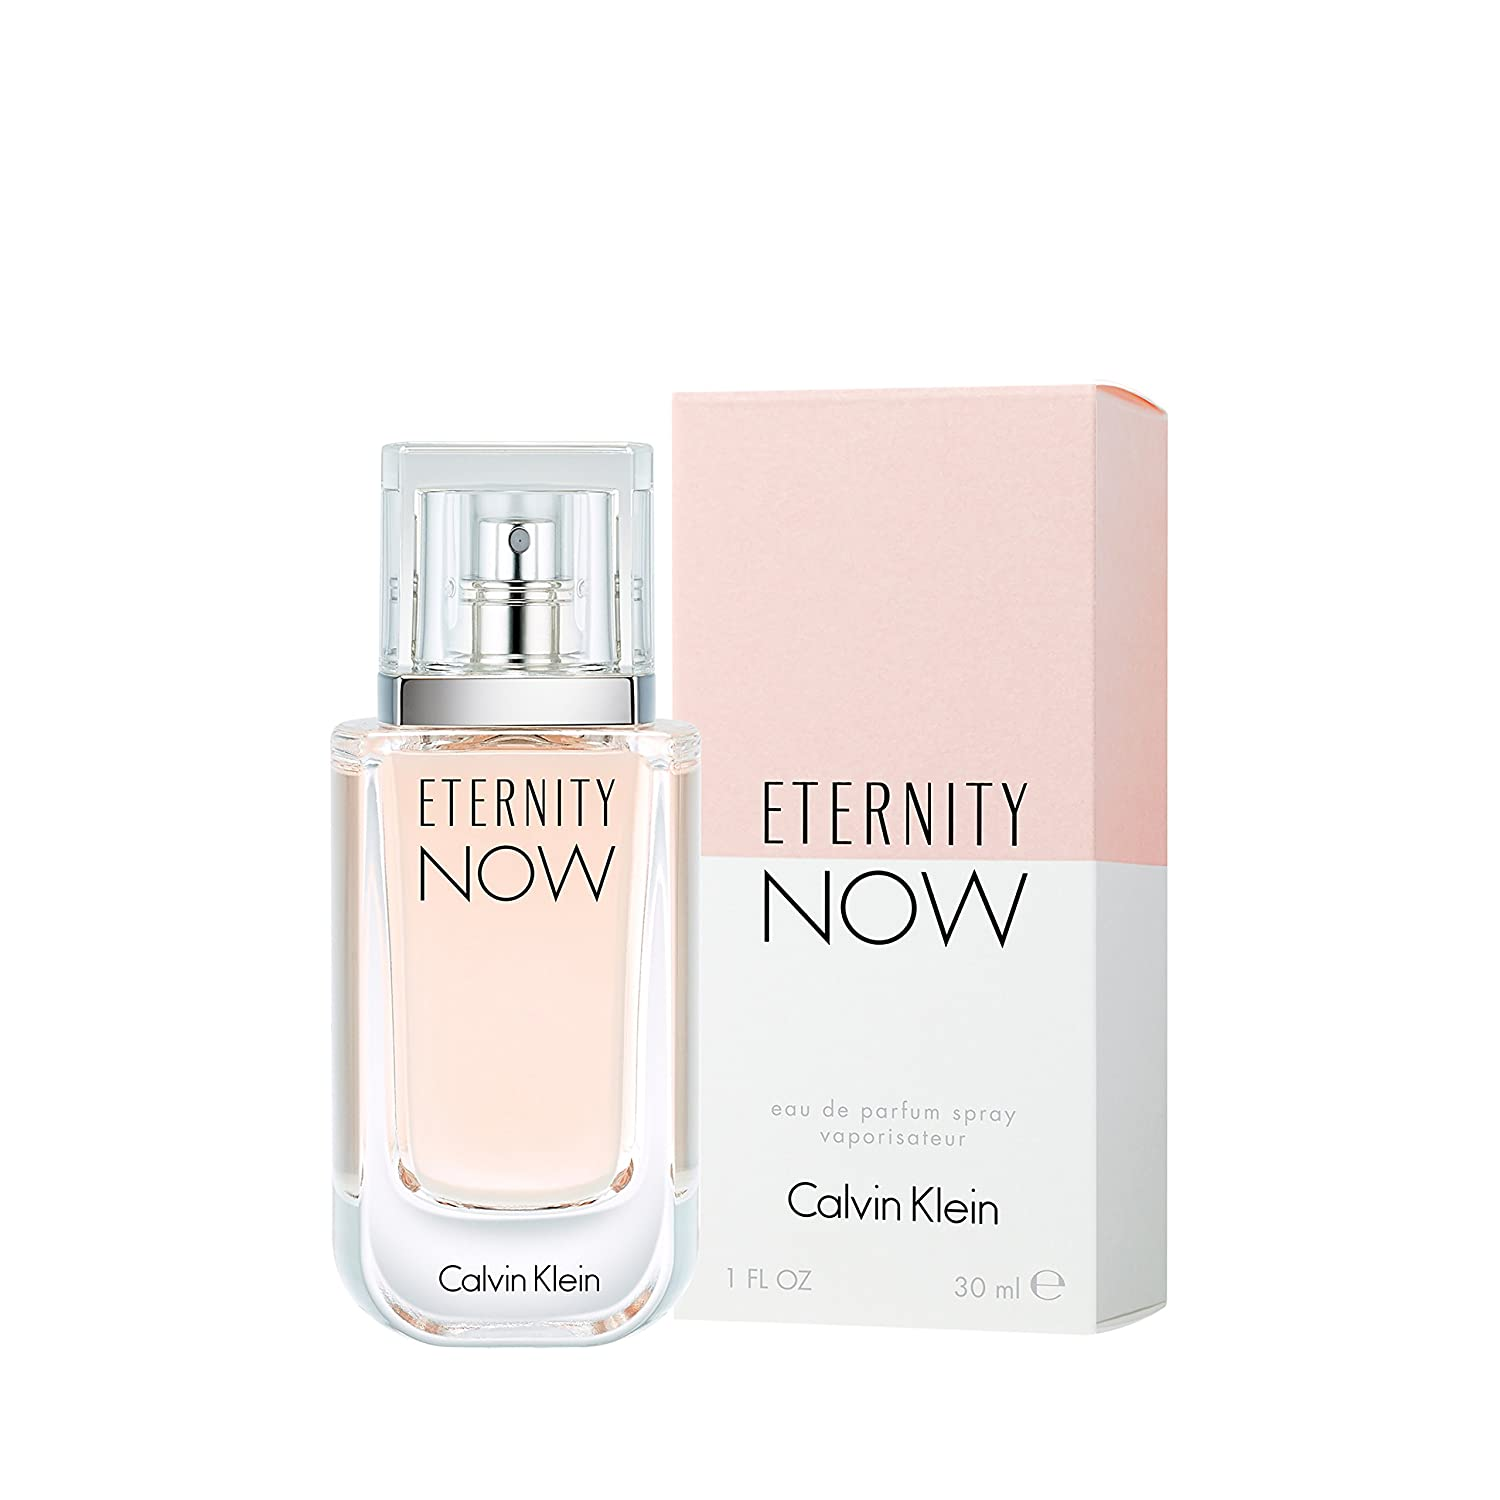 Amazon.com  Calvin Klein Eternity Now Eau de Parfum Spray, 1.7 fl. oz.   Luxury Beauty 53c31b9582